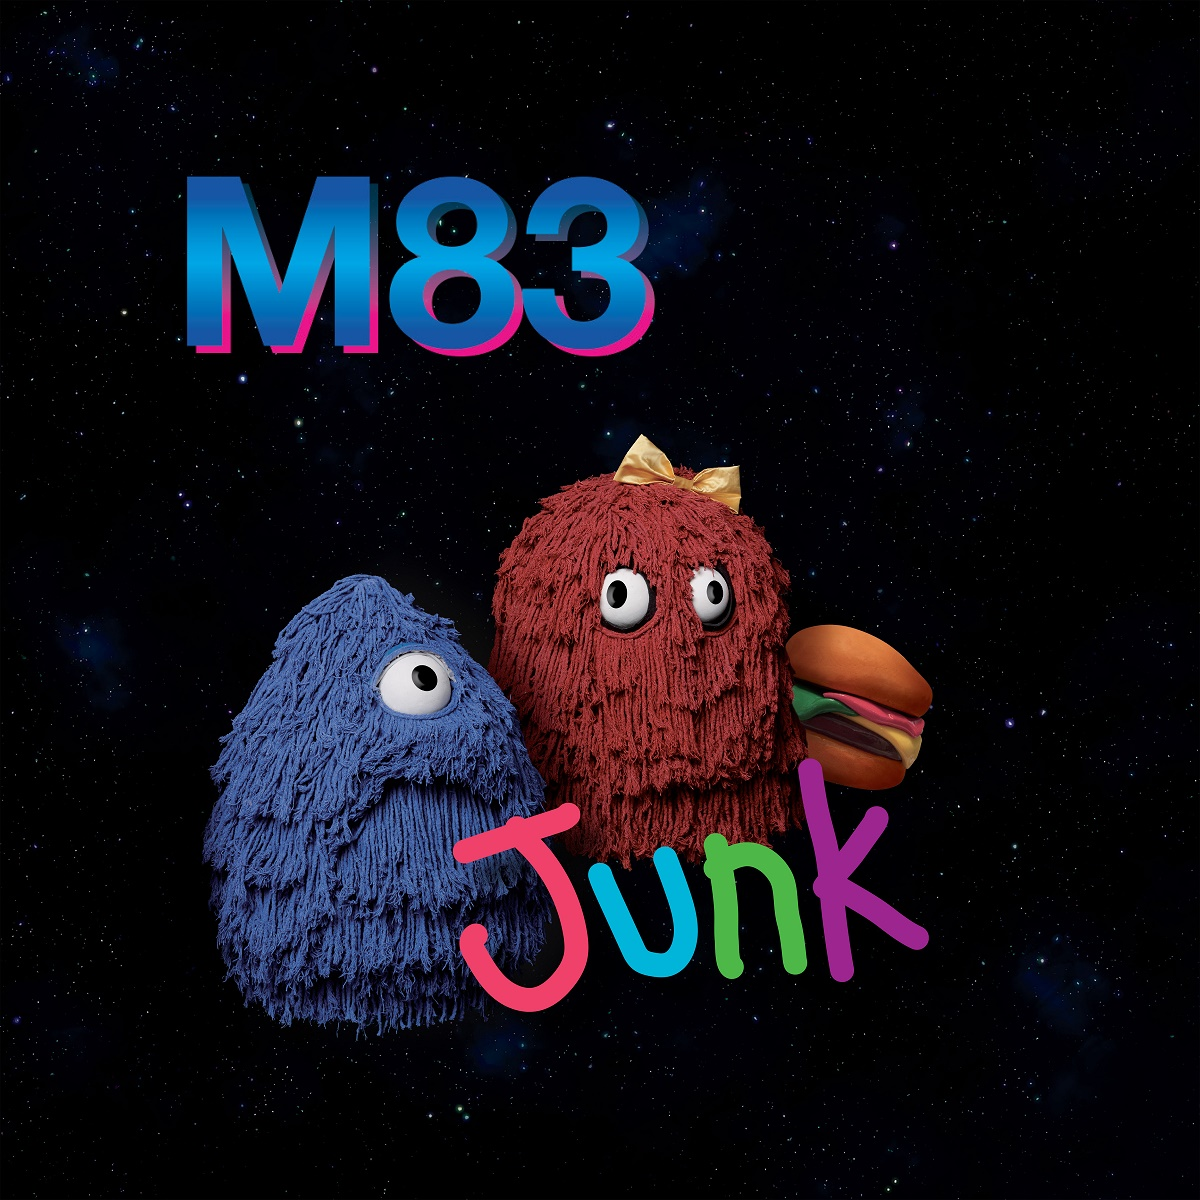 M83 x Anthony Gonzalez x Tom Kent – Junk